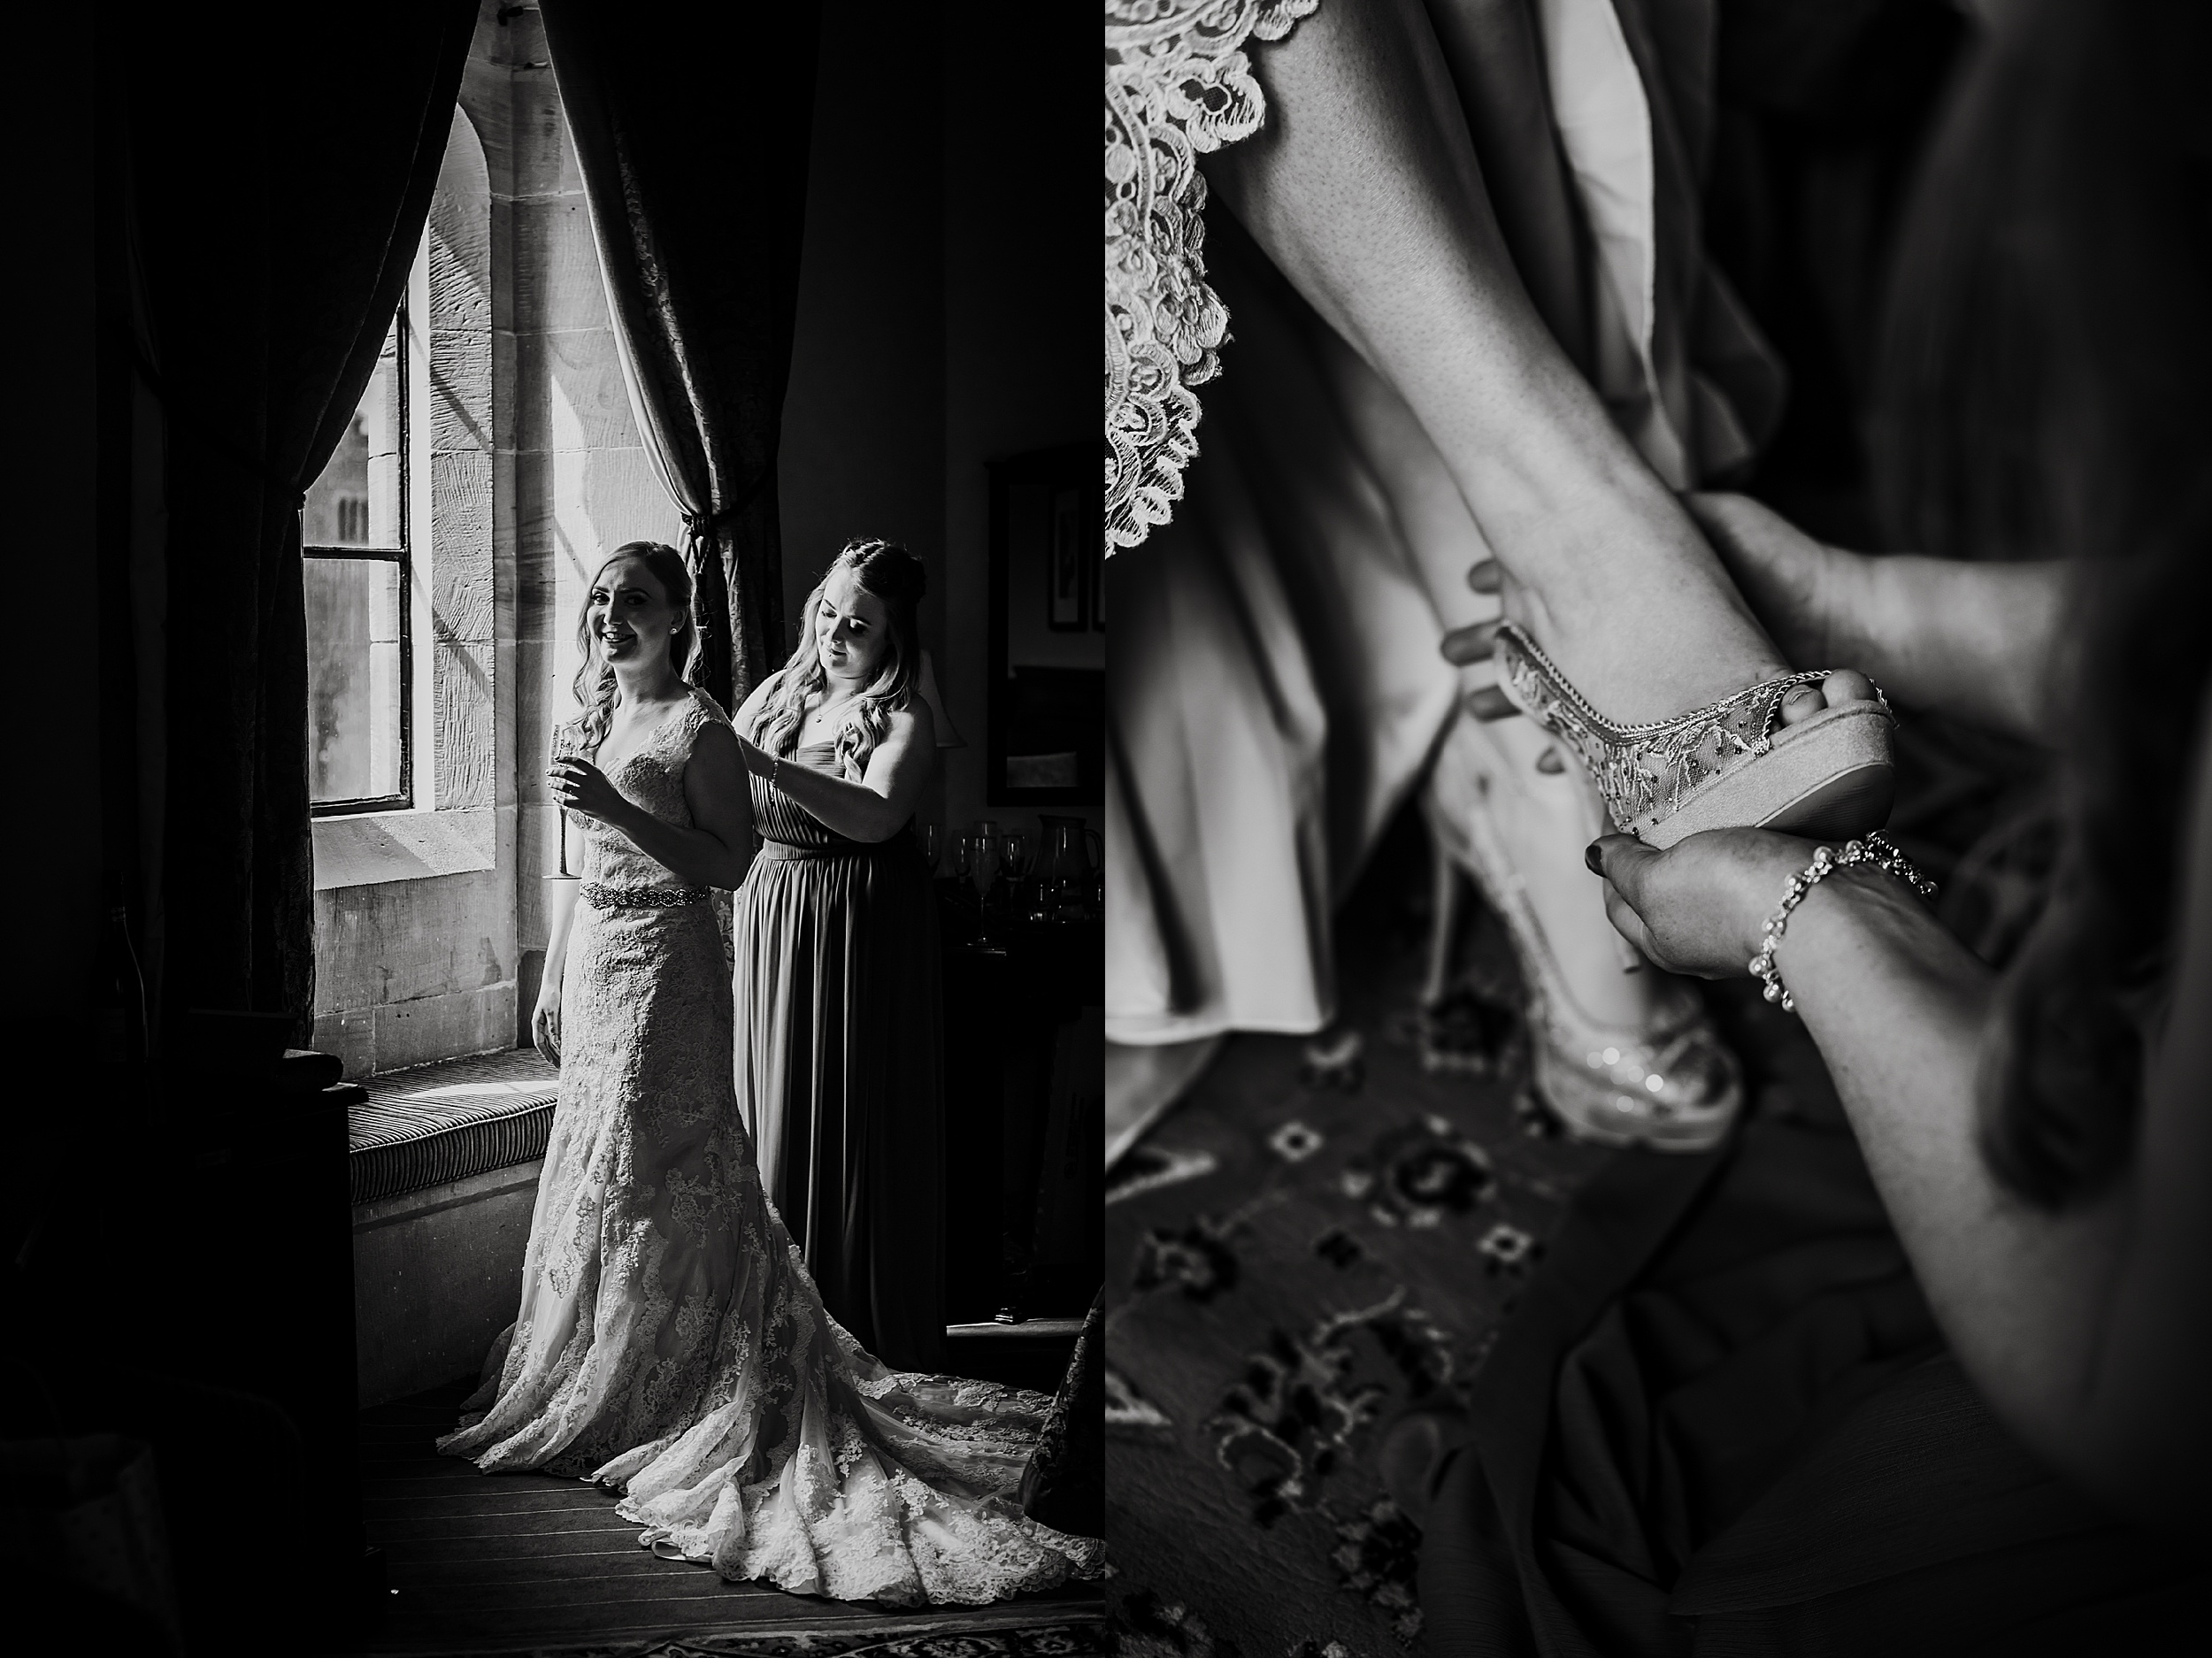 Peckforton_Castle_Cheshire_Toronto_Wedding_Photographer_UK_Destination_Wedding_0015.jpg